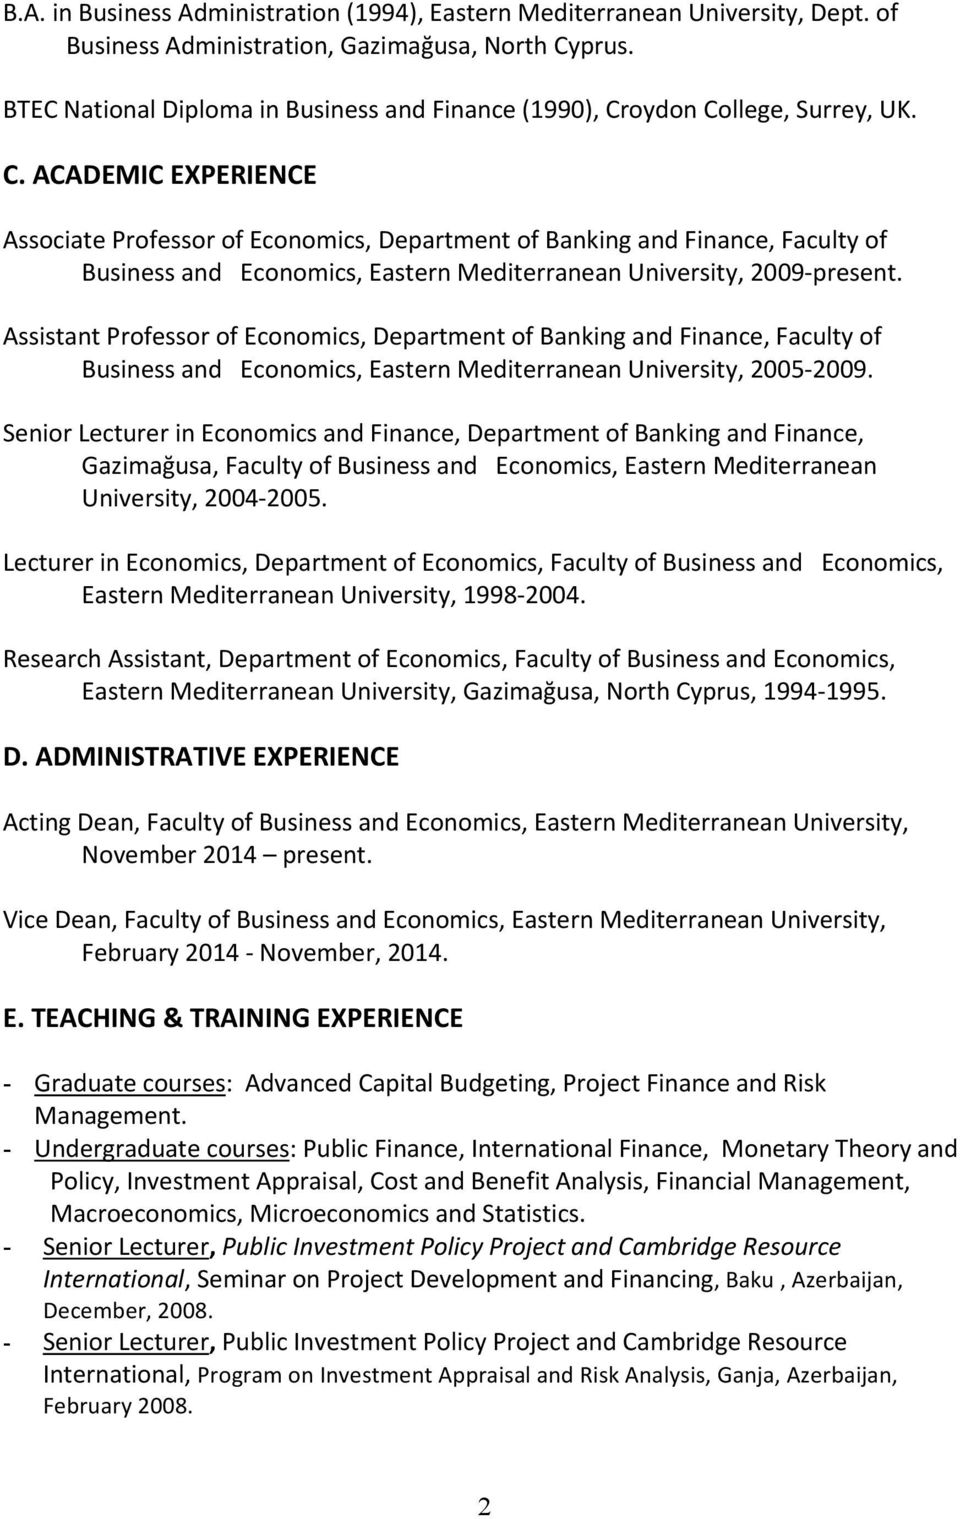 oydon College, Surrey, UK. C. ACADEMIC EXPERIENCE Associate Professor of Economics, Department of Banking and Finance, Faculty of Business and Economics, Eastern Mediterranean University, 2009 present.